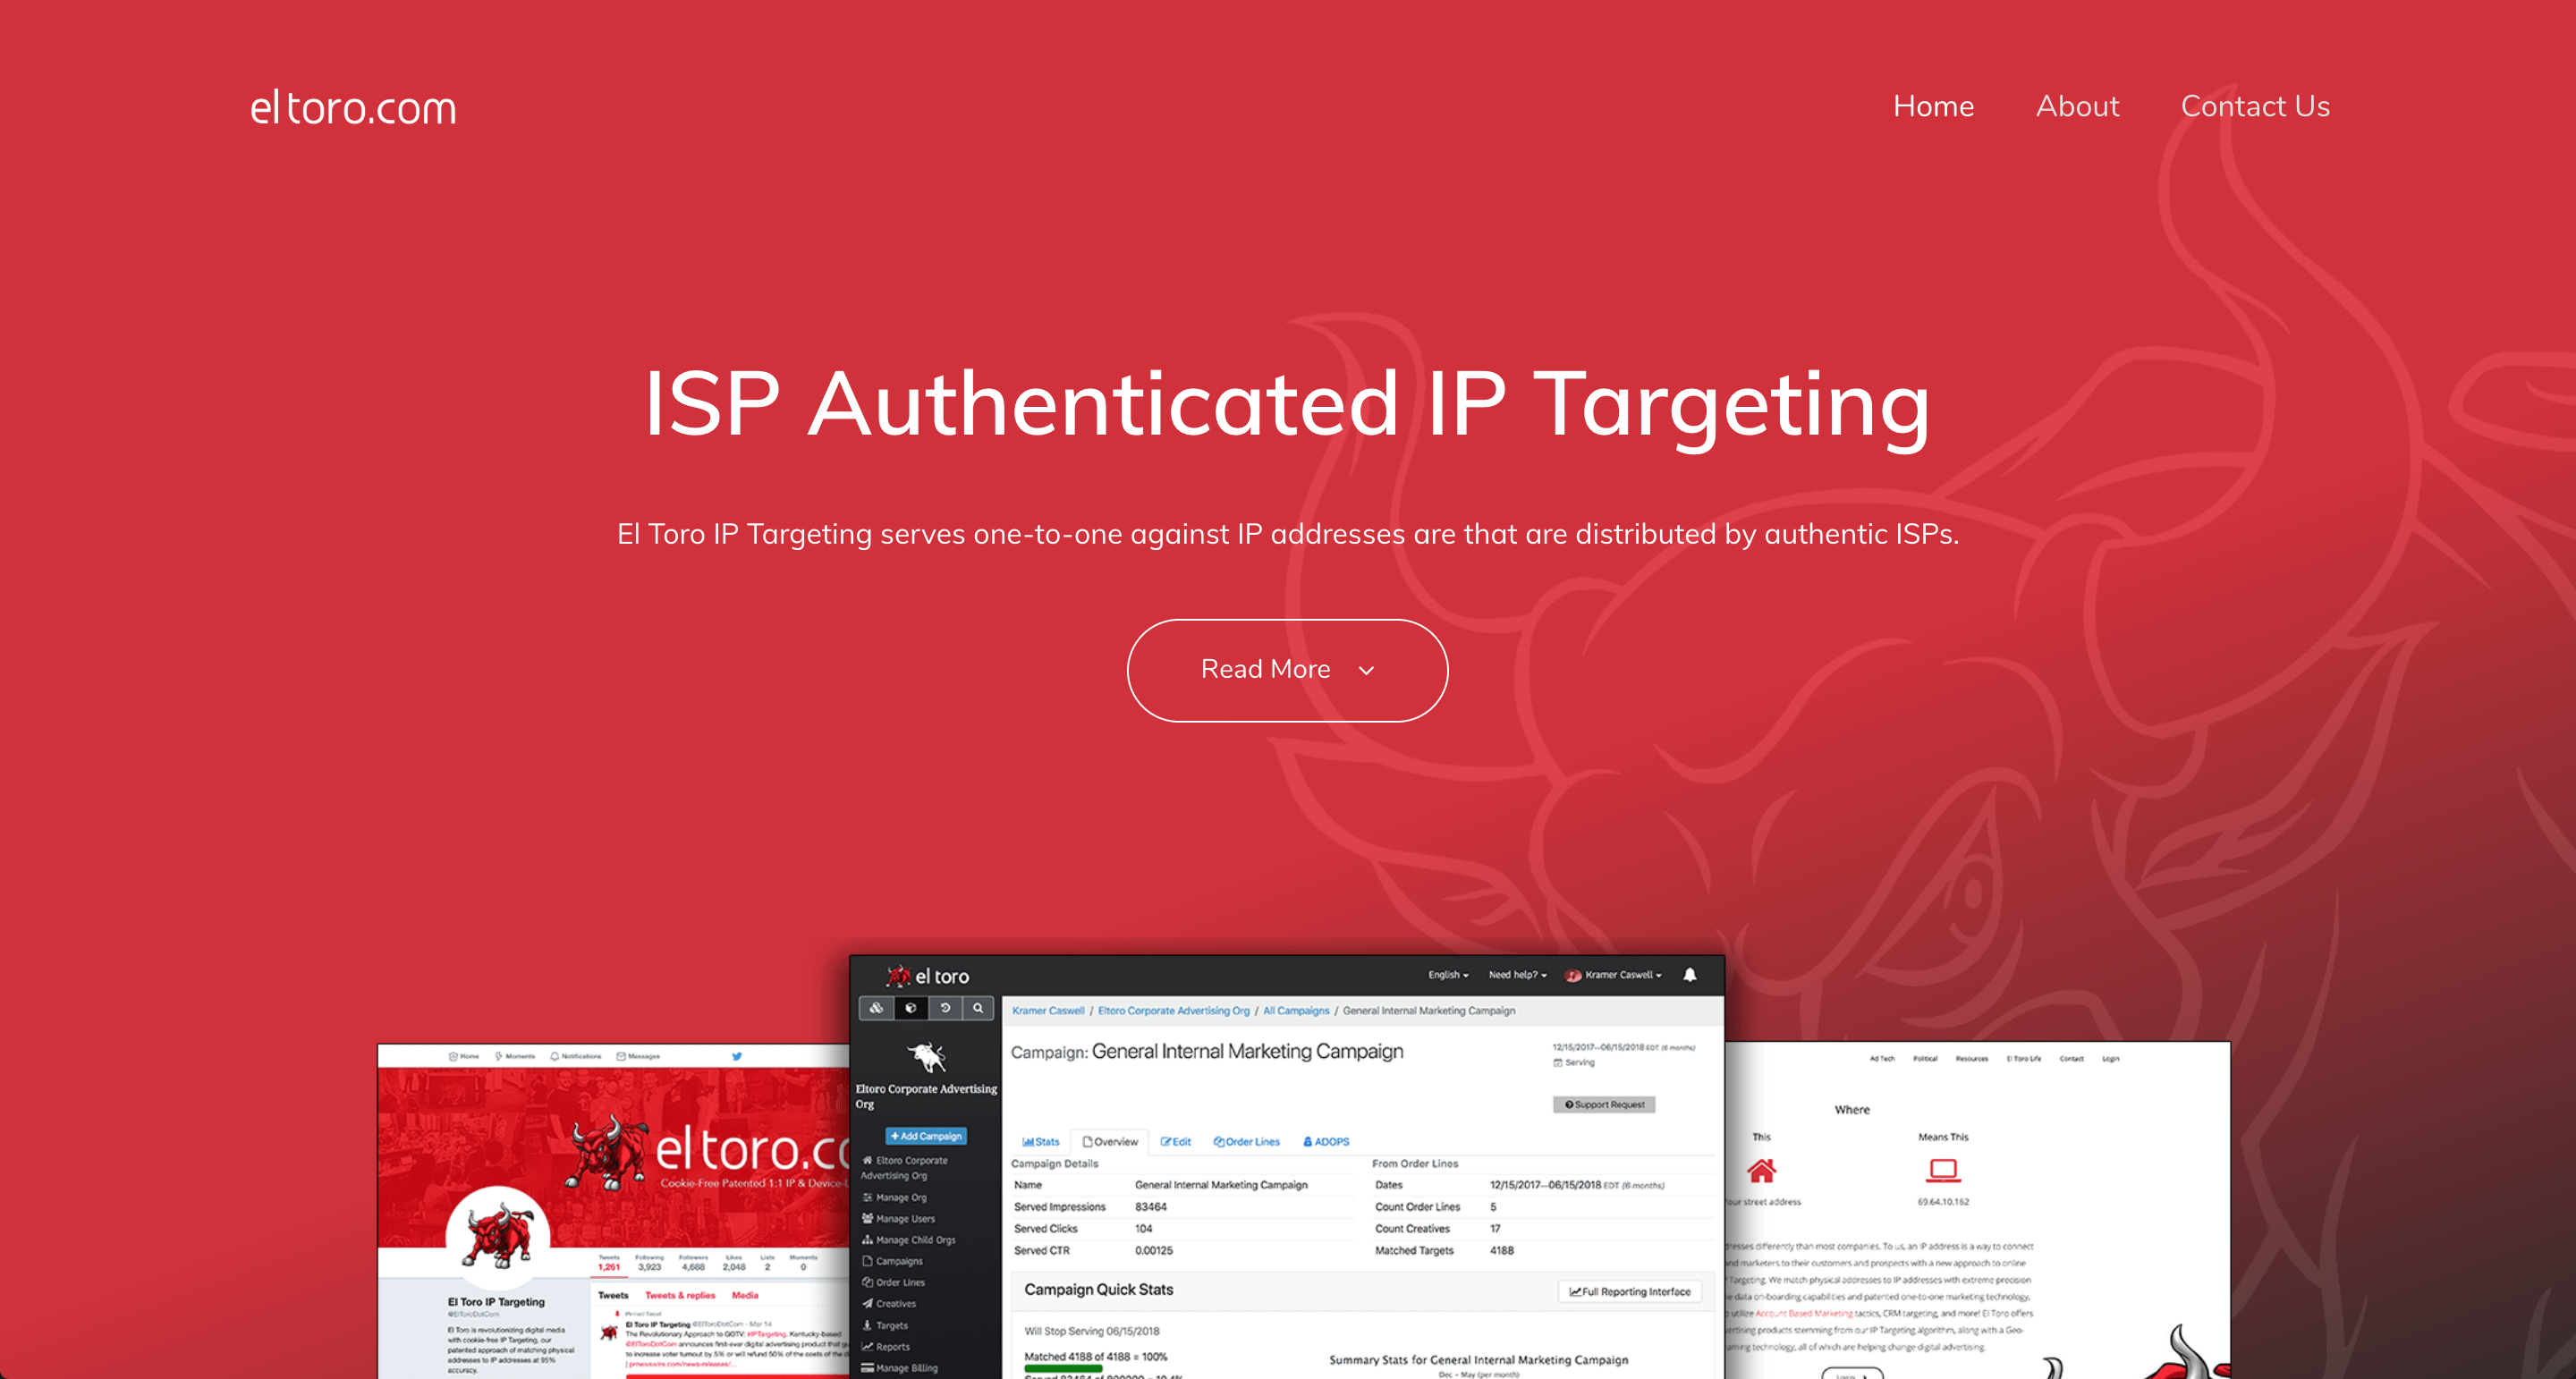 isp authenticated ip targeting